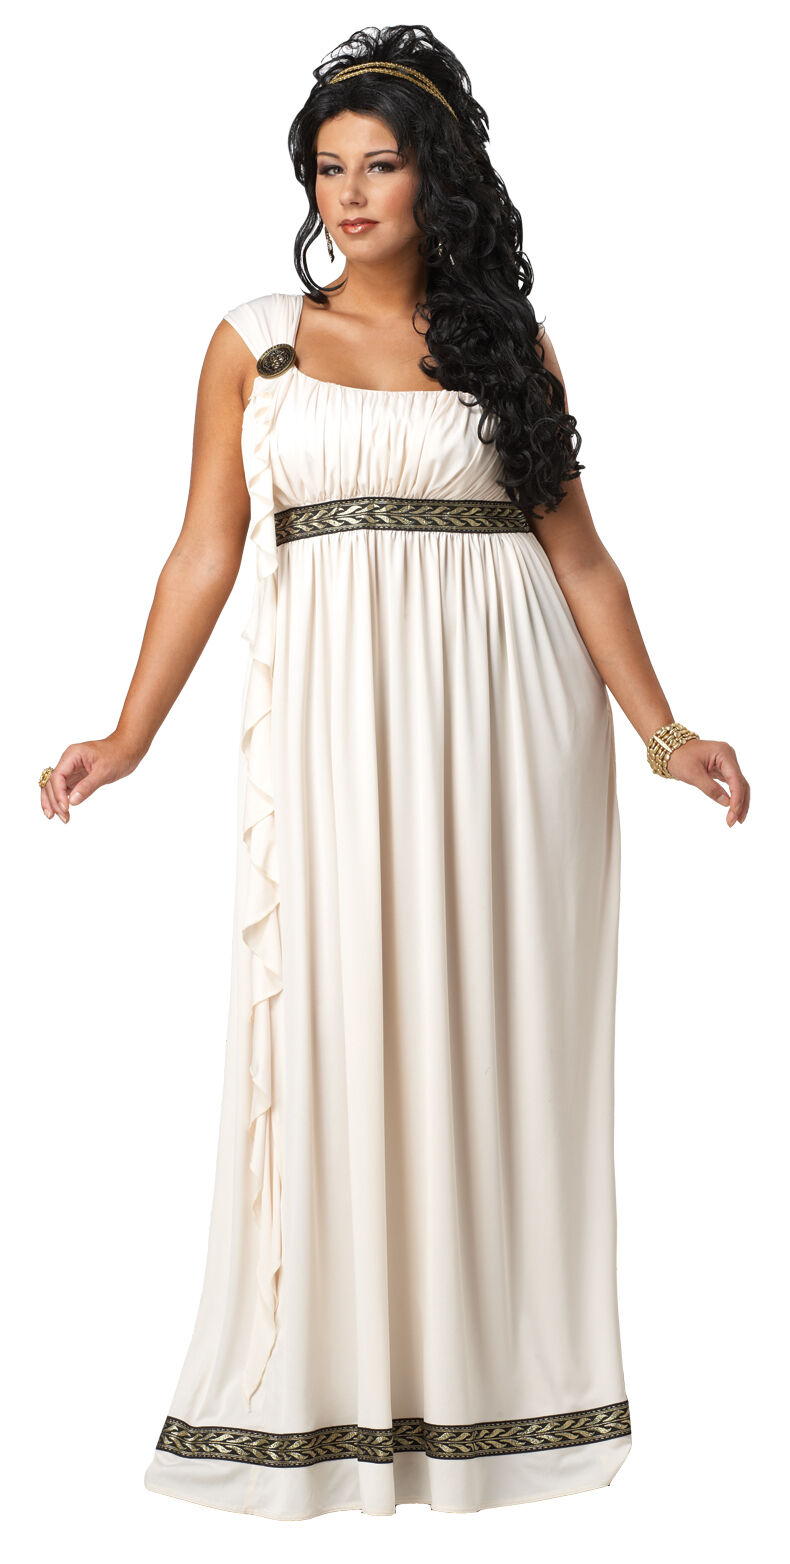 Adults Greek Goddess Outfit Fancy Dress Including Sandals Size 16-18 Toga Party